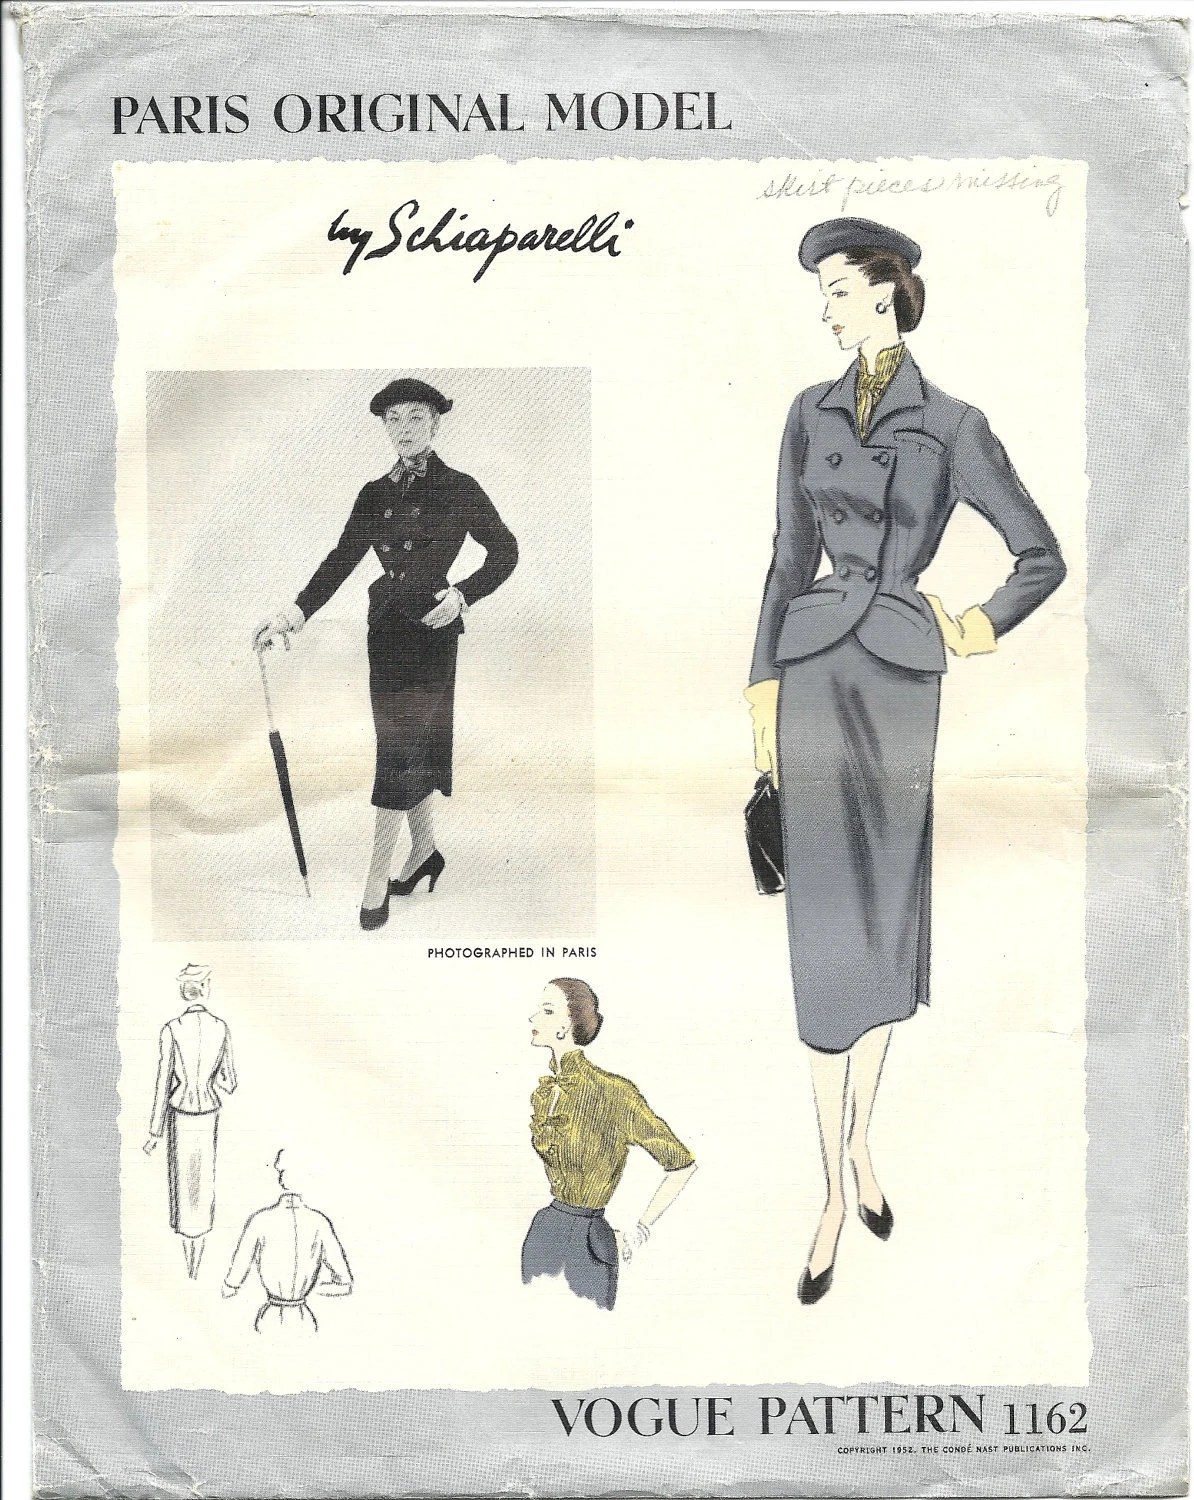 Vogue 1162 Elsa Schiaparelli pattern 1950s jacket skirt suit blouse Vogue Paris Original